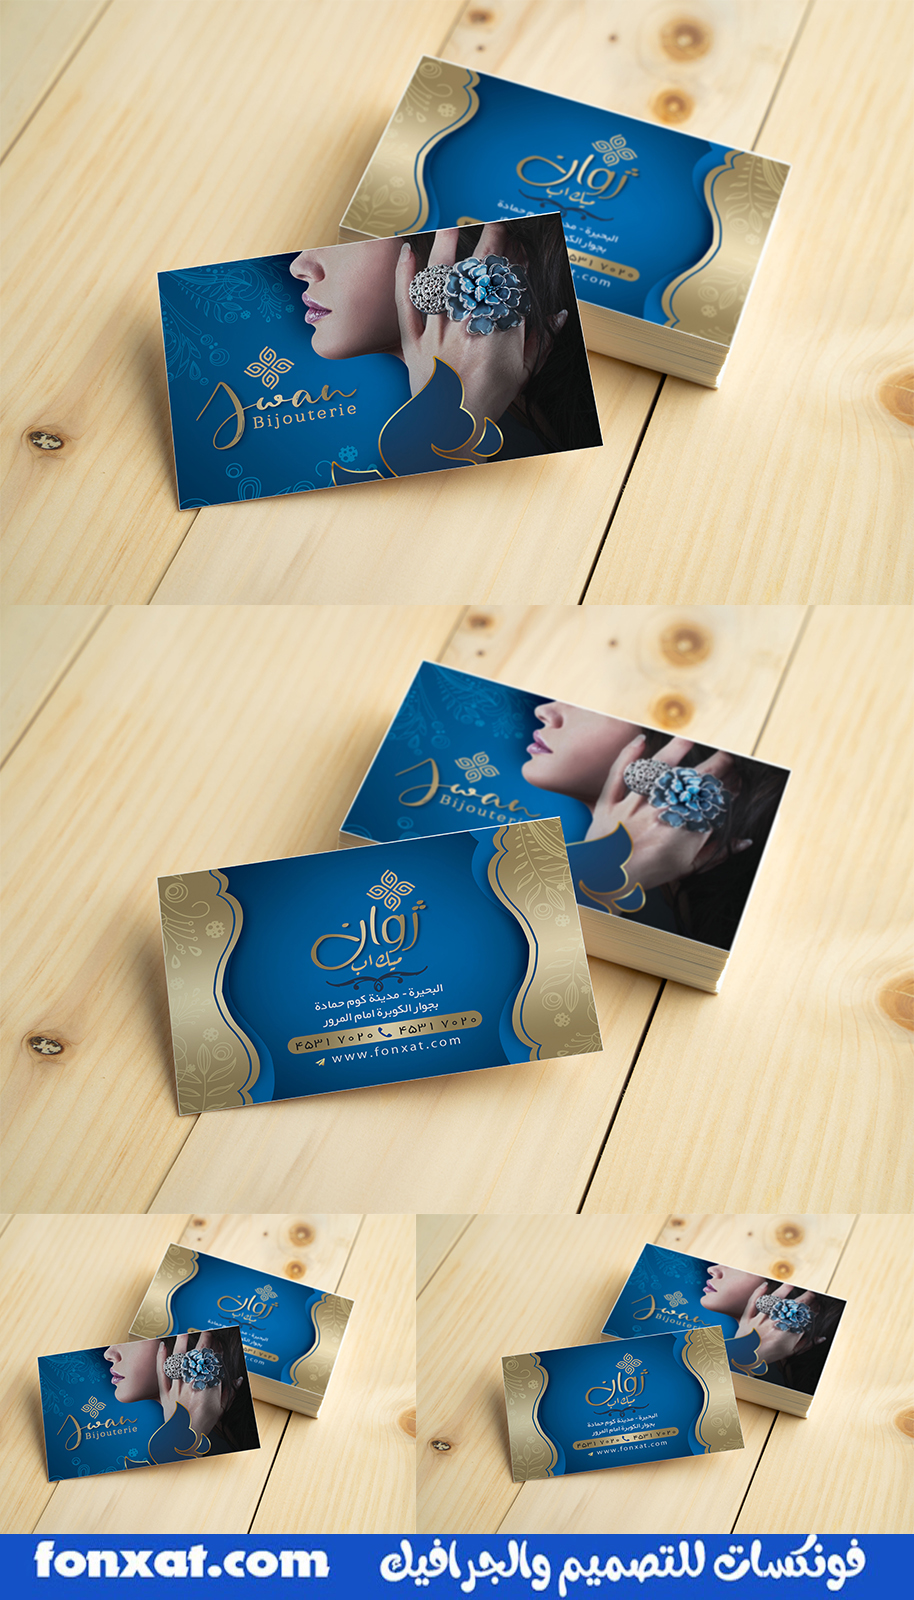 Personal card psd free download, suitable for most of the hairdressing and beauty salon fields